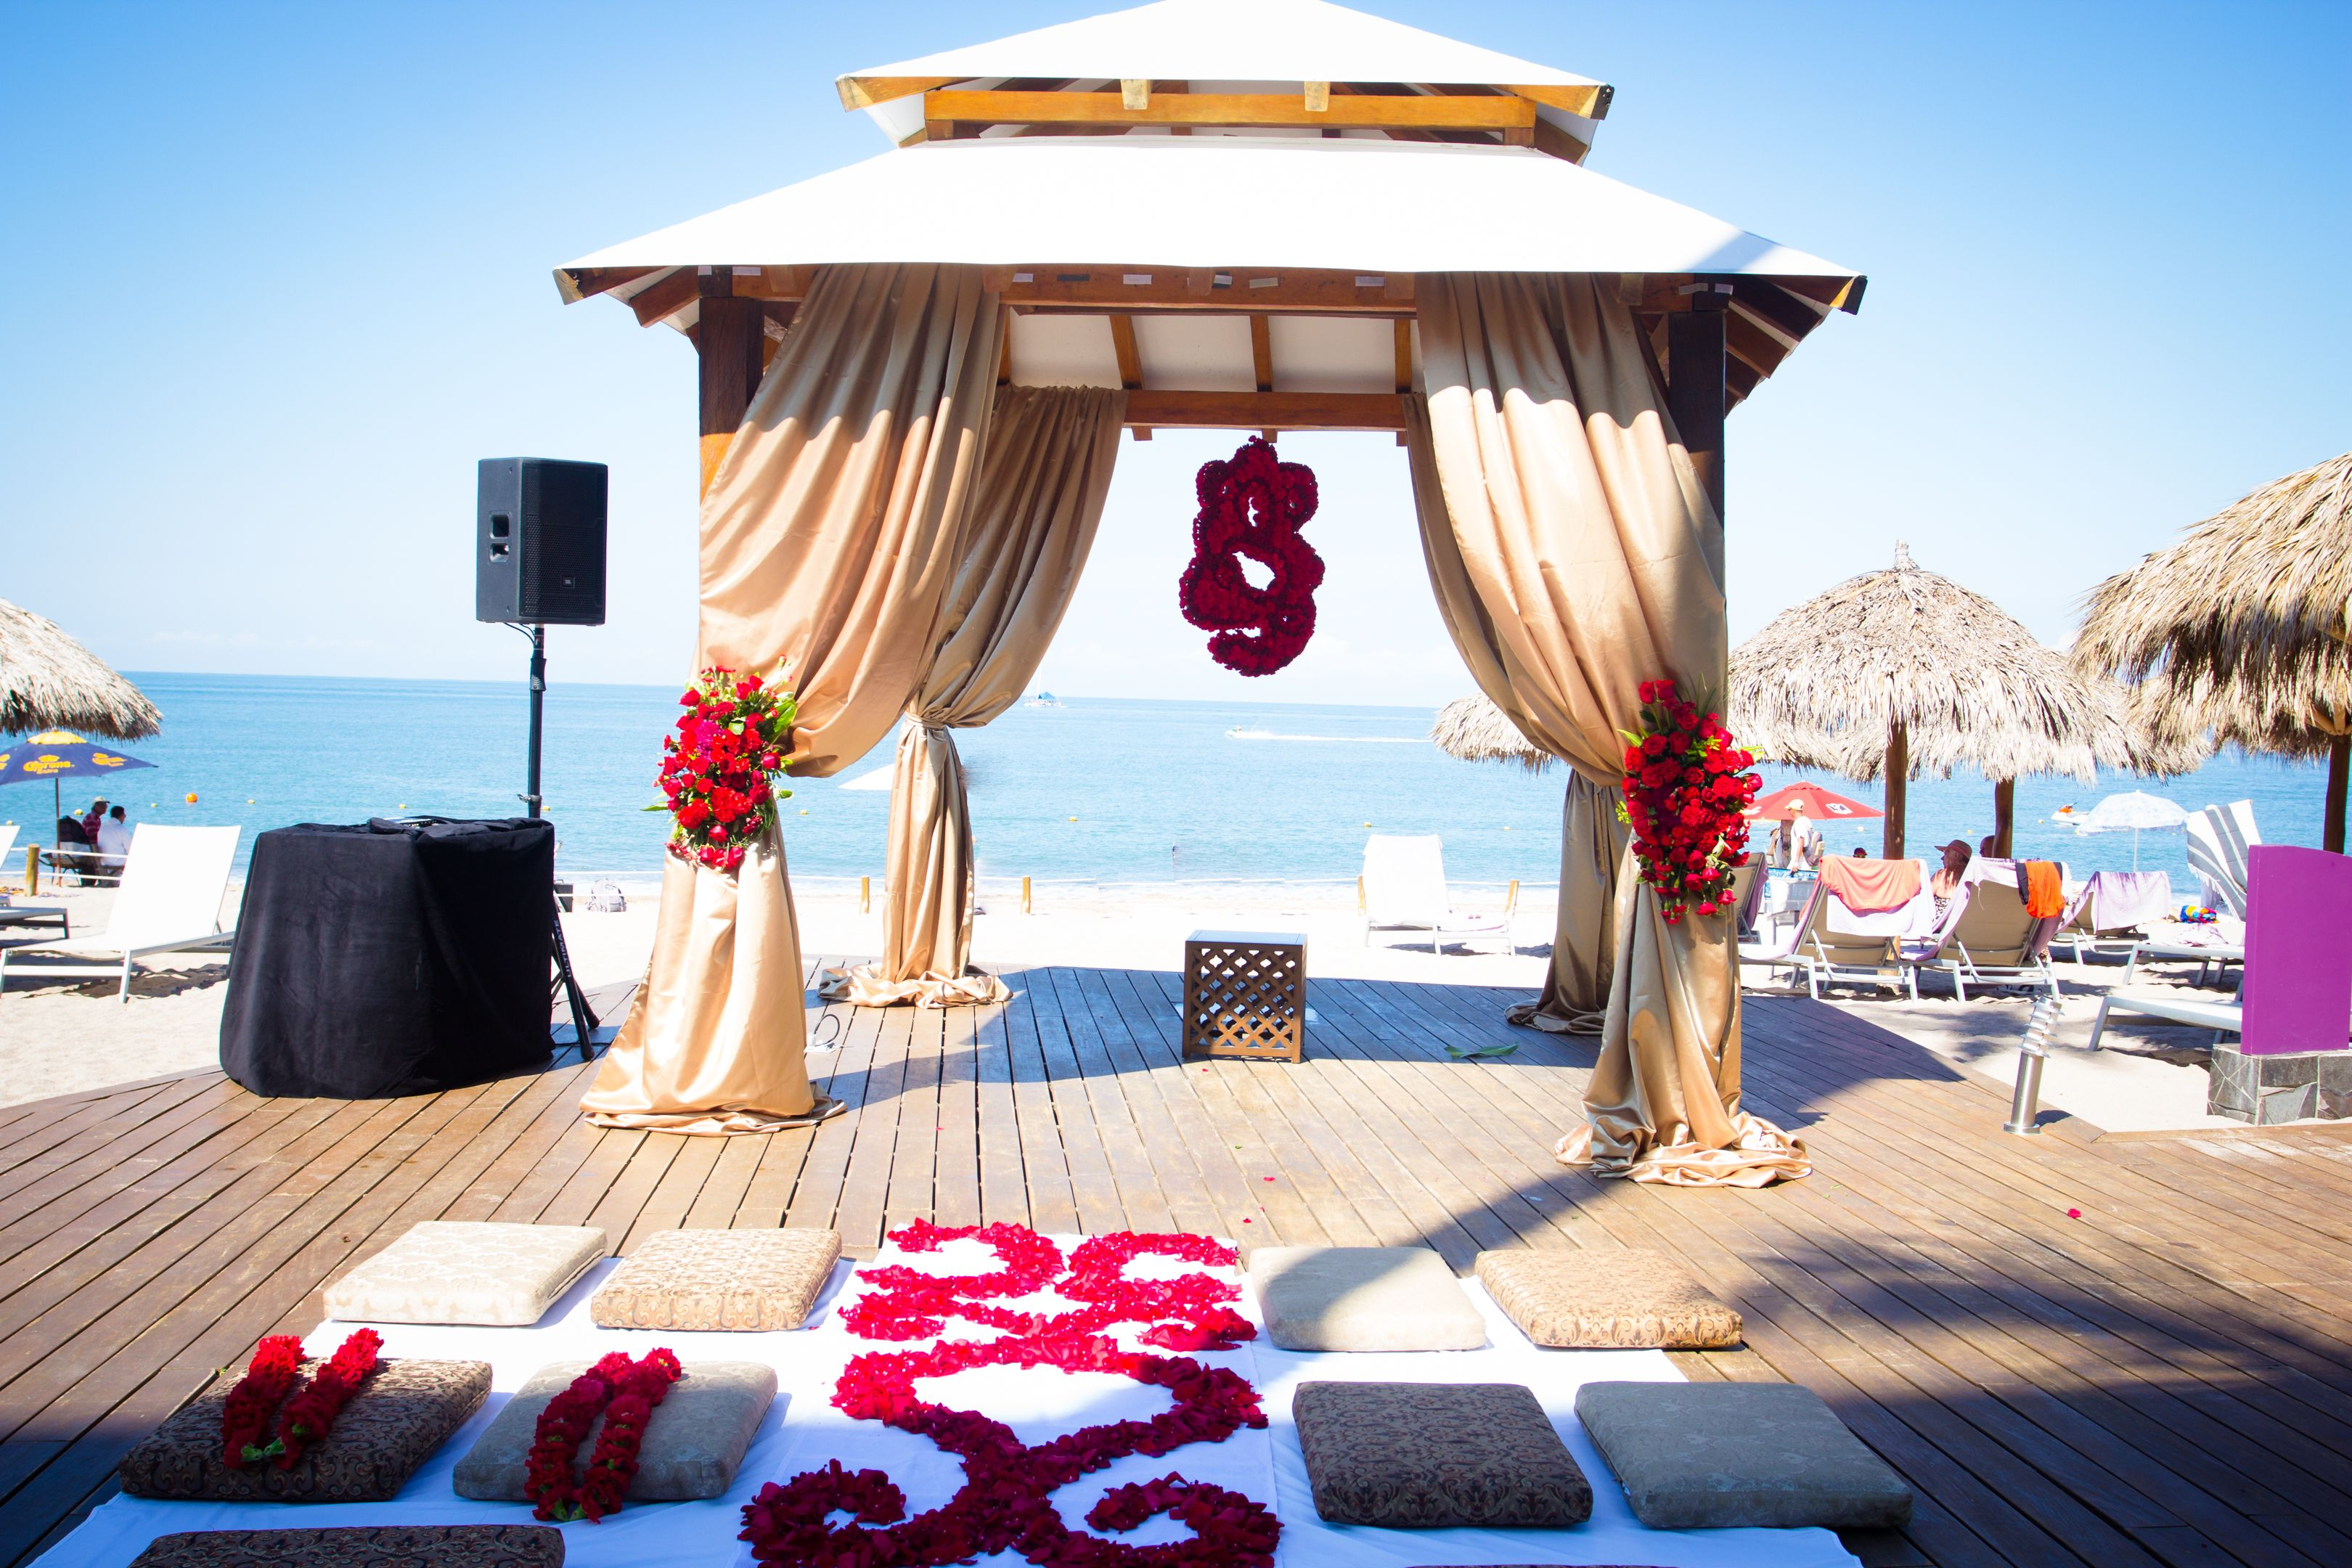 Secrets Vallarta Bay Puerto Vallarta - Your Secrets Wedding & The stunning gazebo #SecretsVallartaBay http://www.secretsresorts ...